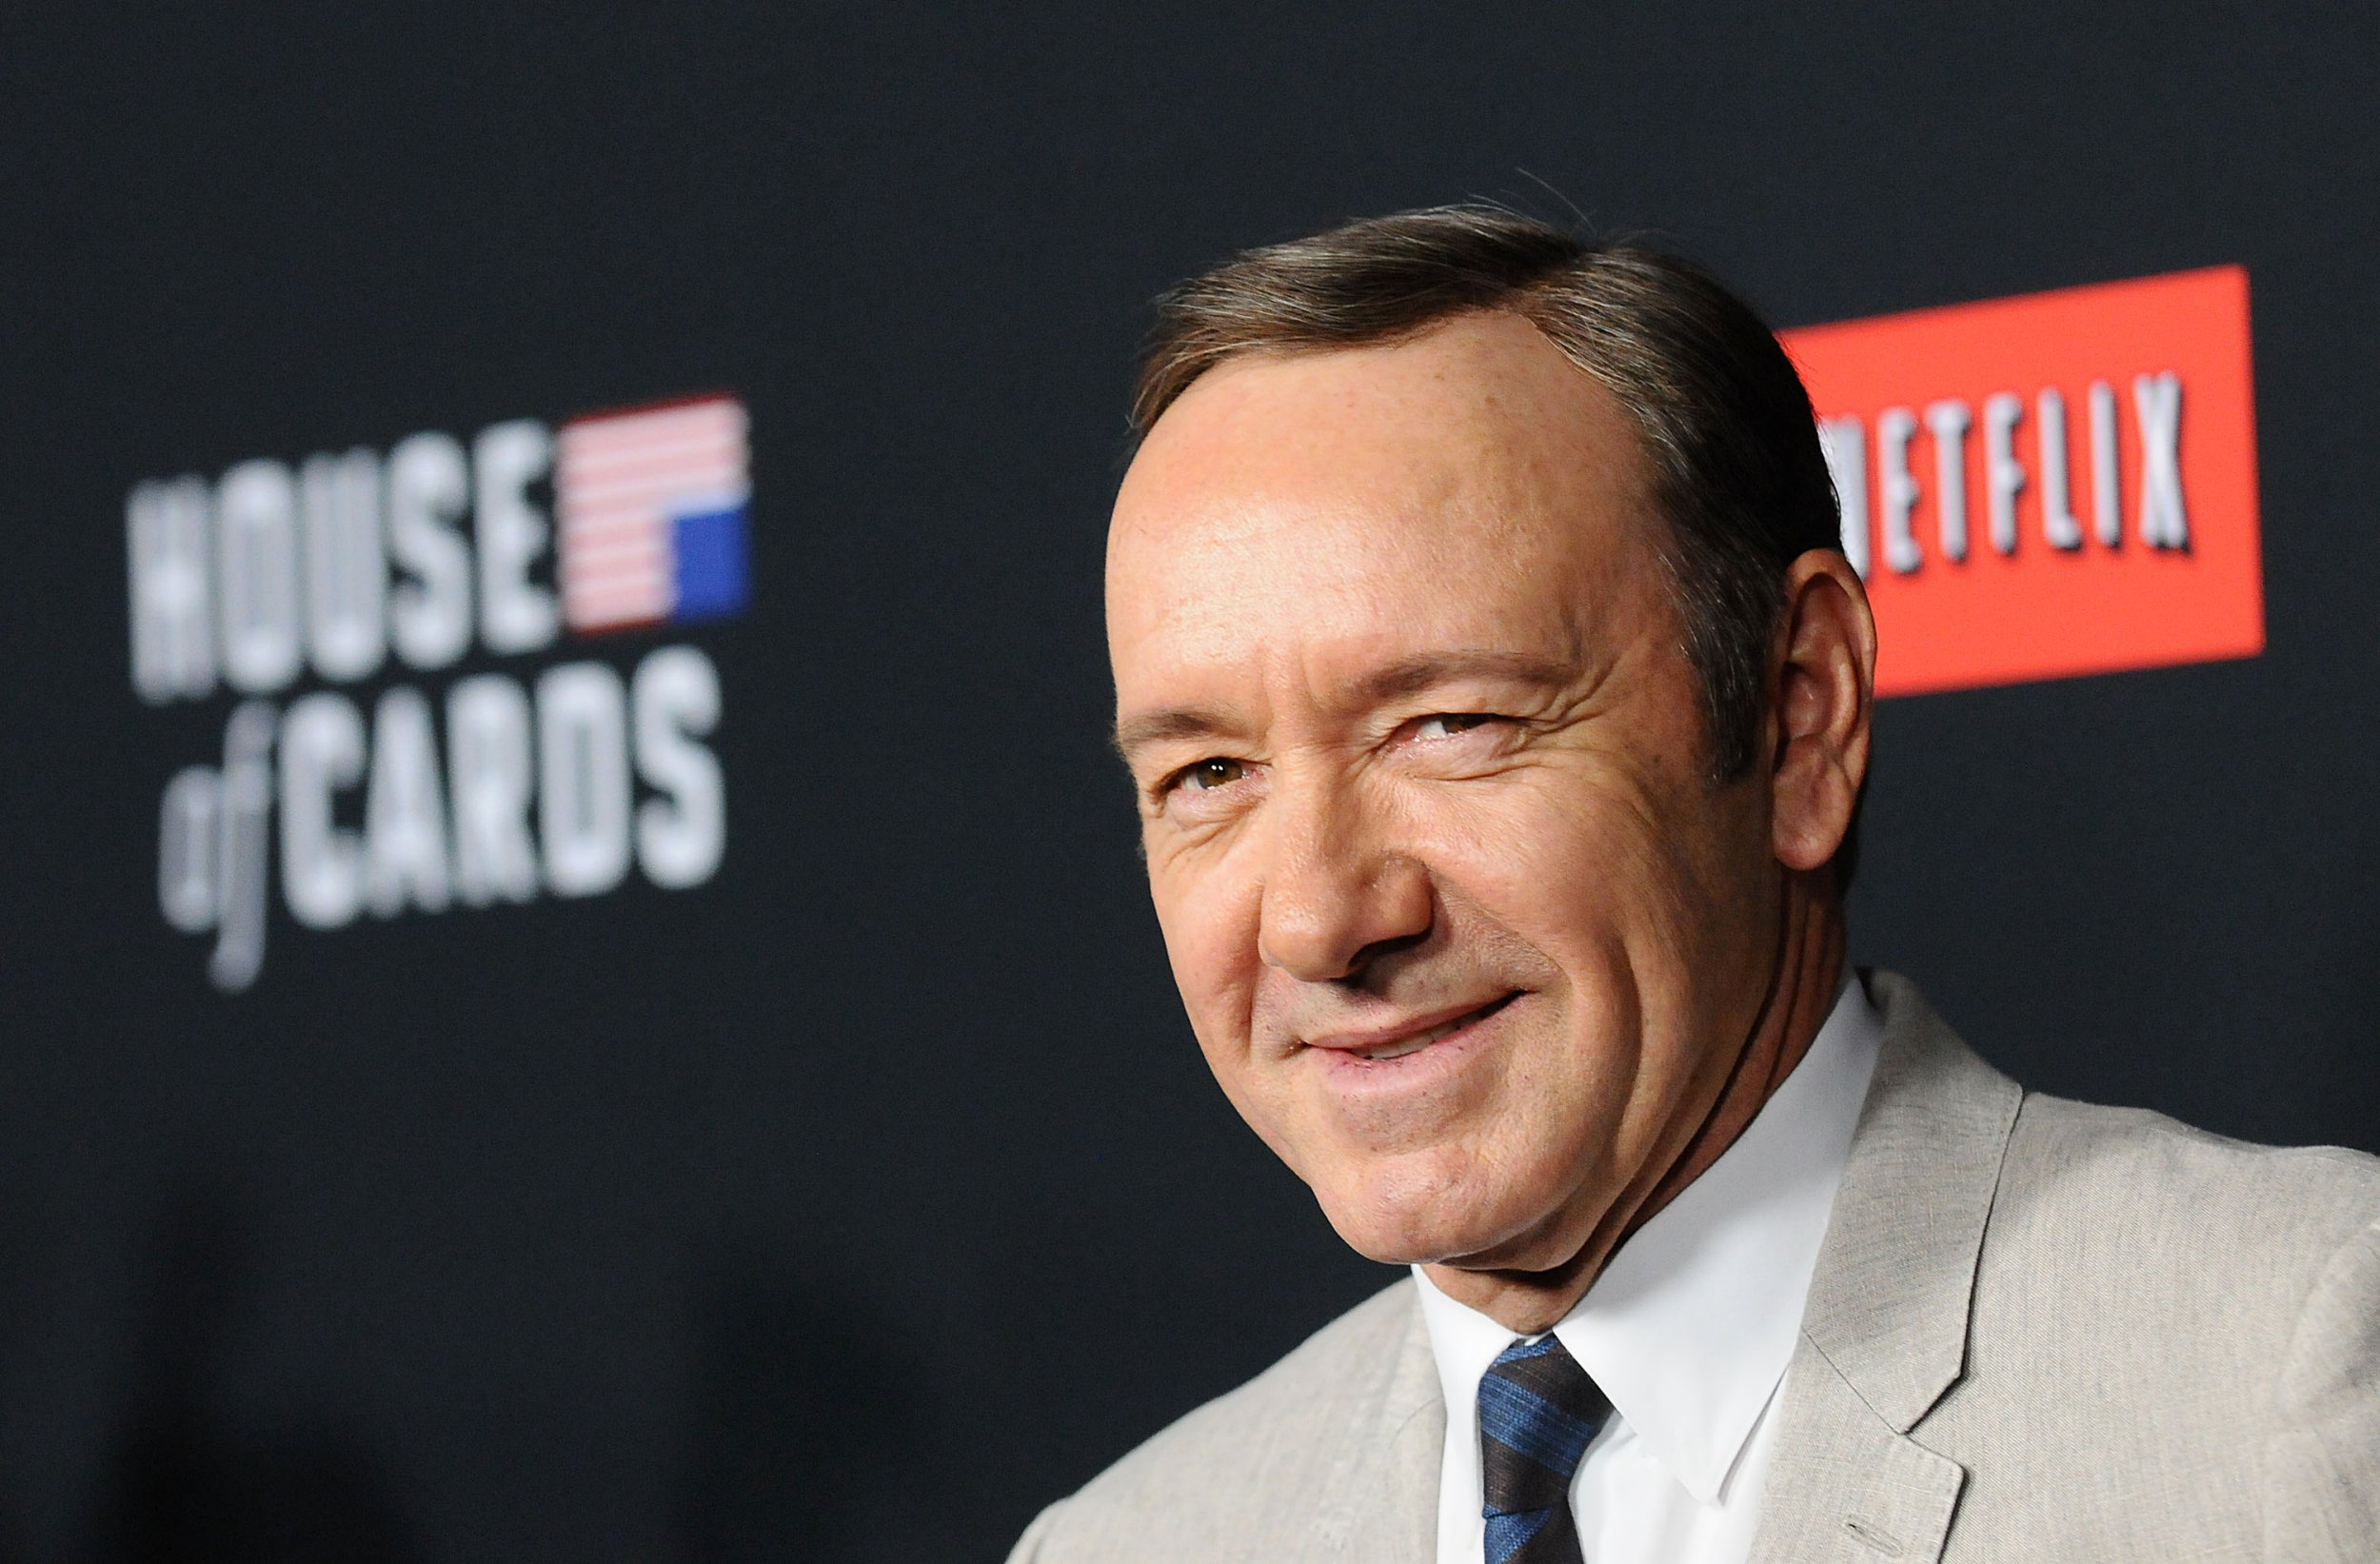 Kevin Spacey 'tries to avoid appearing in court' over sexual assault charge after bizarre video